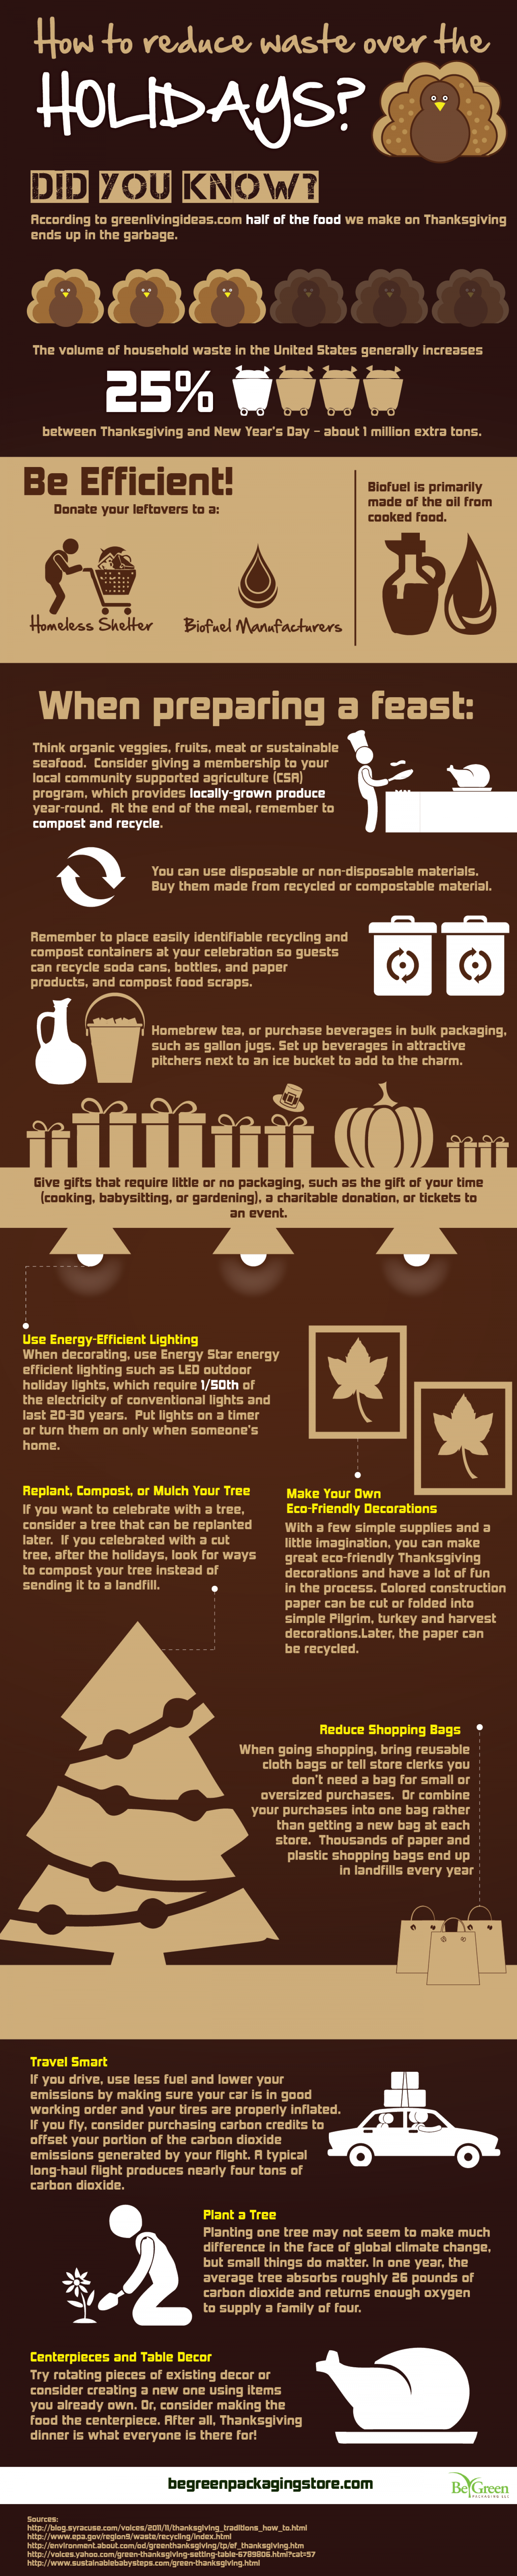 How to Reduce Waste Over the Holidays?  Infographic